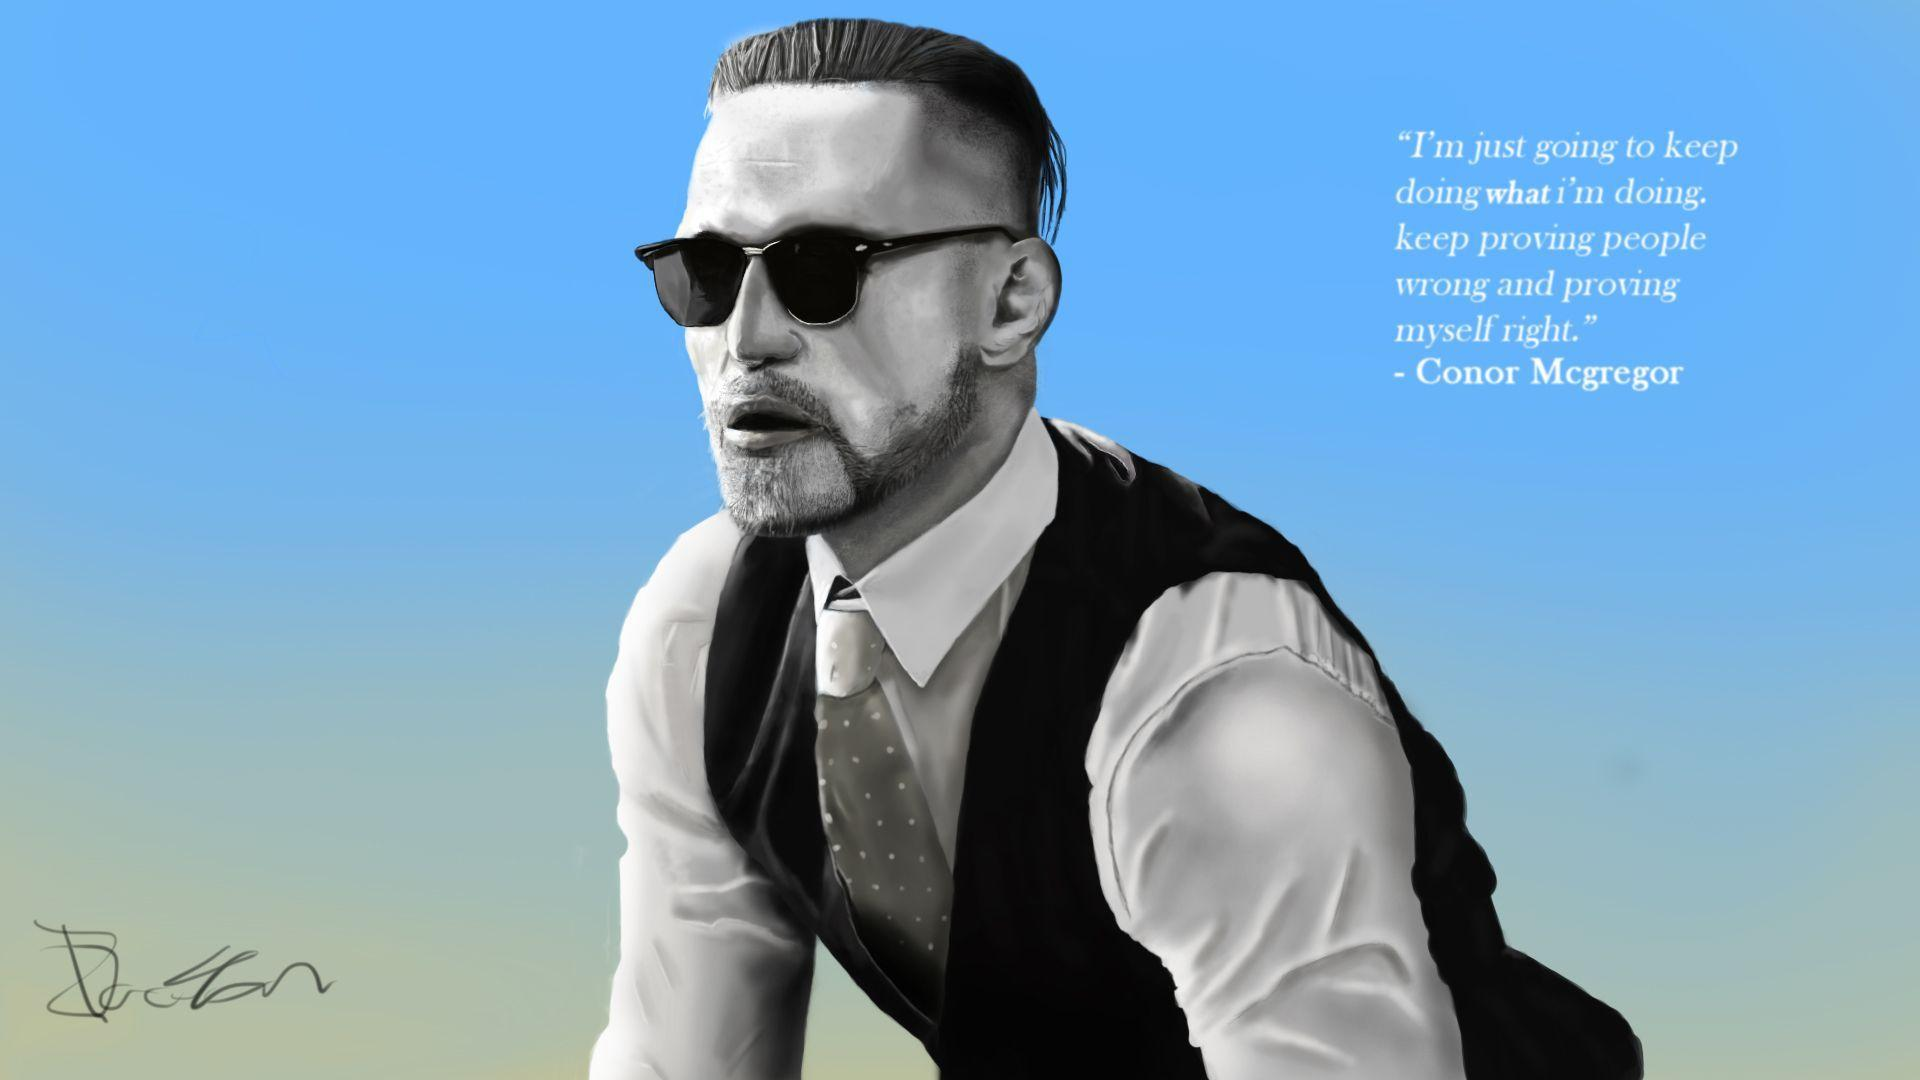 Download Wallpaper Conor Mcgregor I M Just Going To Keep